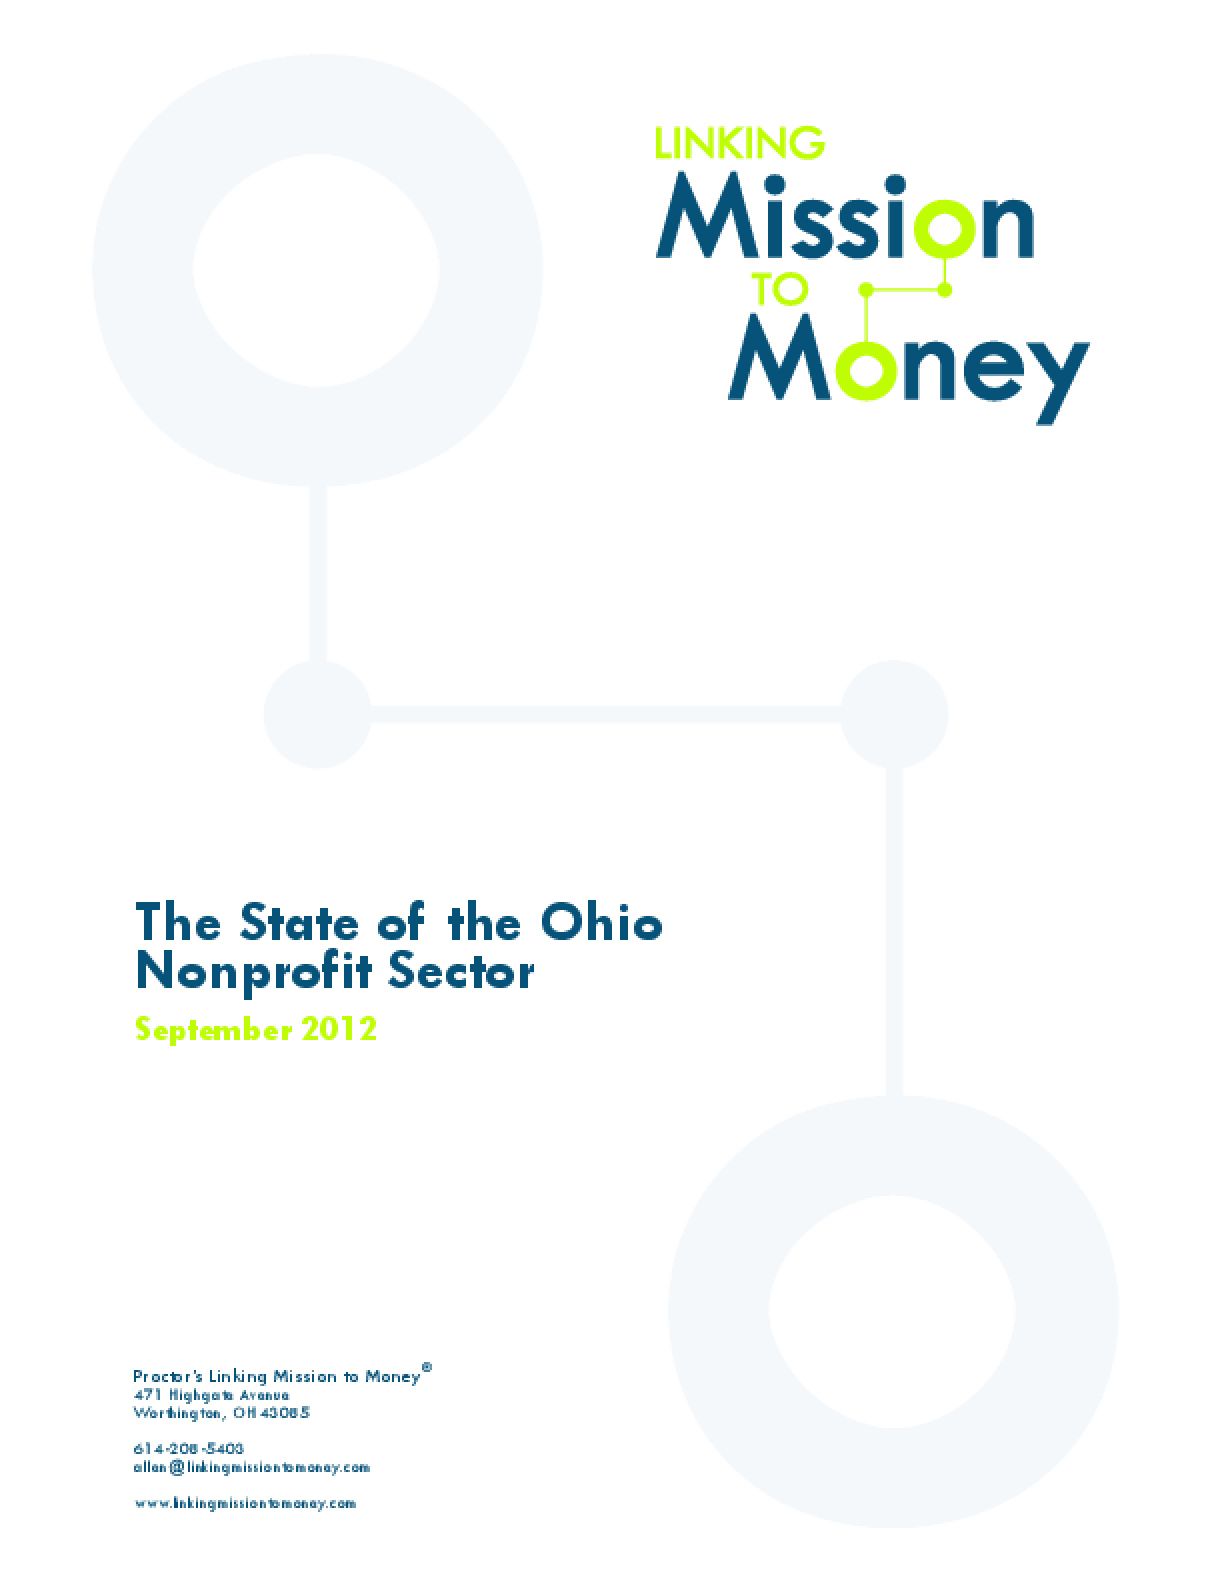 The State of the Ohio Nonprofit Sector